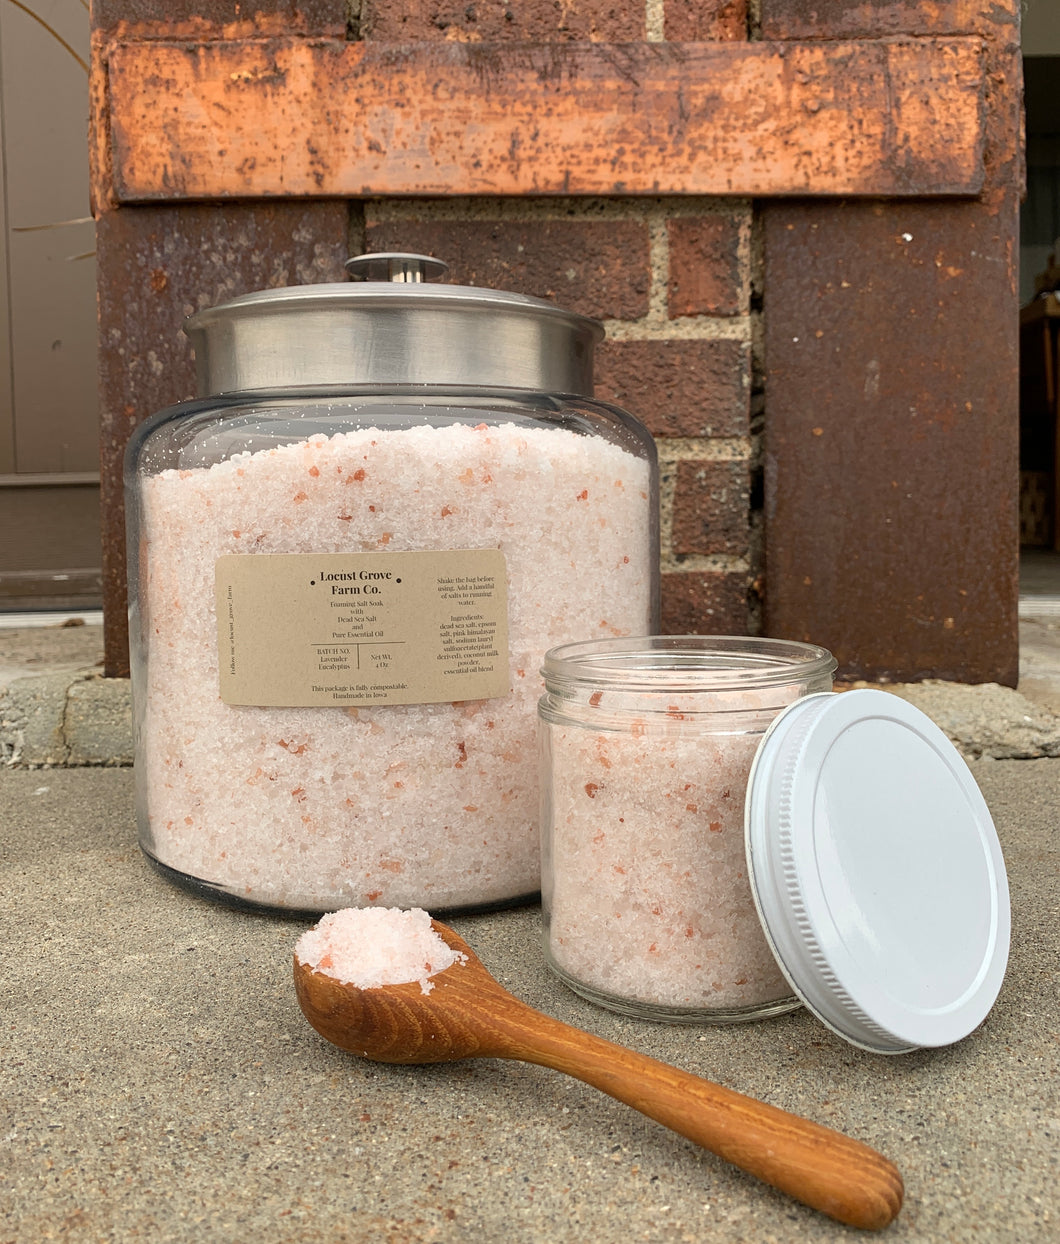 LOCUST GROVE FARM | Foaming Bath Salt - BULK (container NOT included)